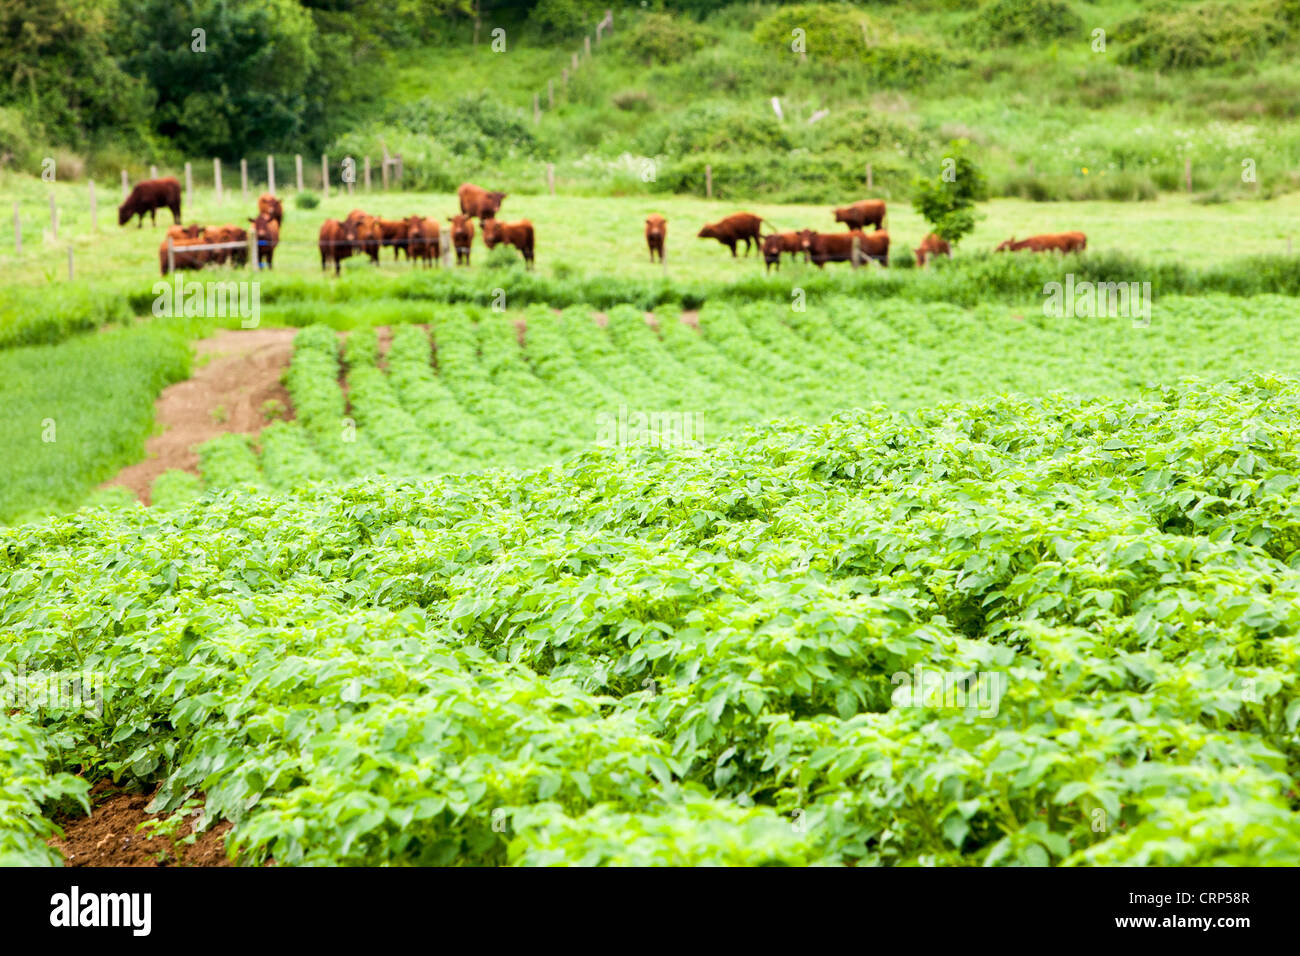 Potatoes growing at Washingpool farm in Bridport, Dorset with North Devon beef cattle behind. - Stock Image